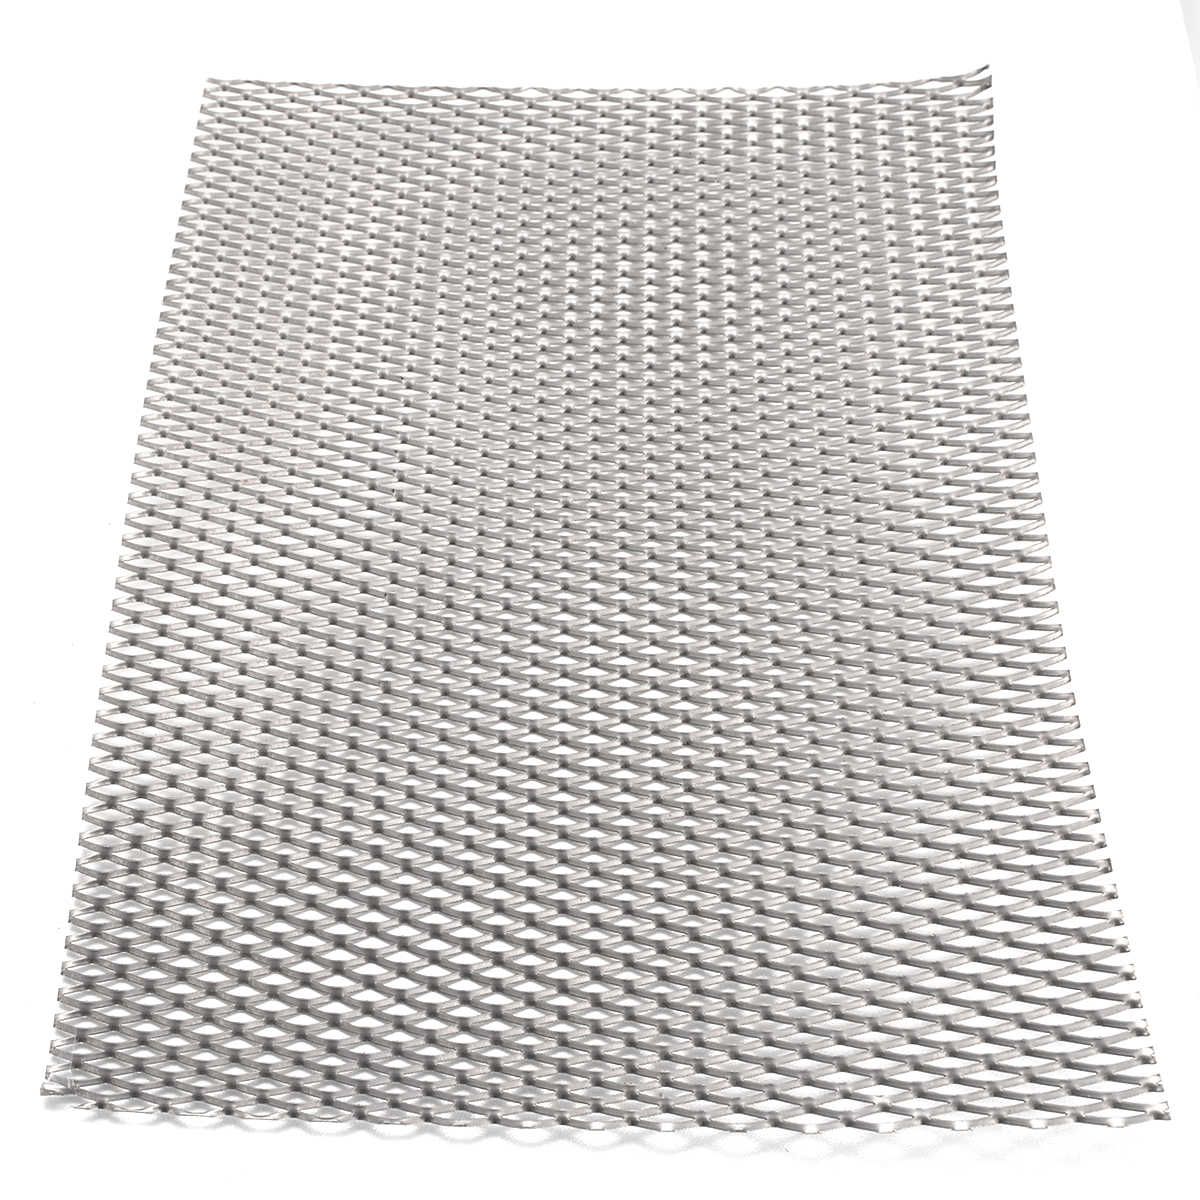 все цены на 1pc Mayitr Practical Metal Titanium Mesh Sheet Heat Corrosion Resistance Silver Perforated Expanded Plate 200mm*300mm*0.5mm